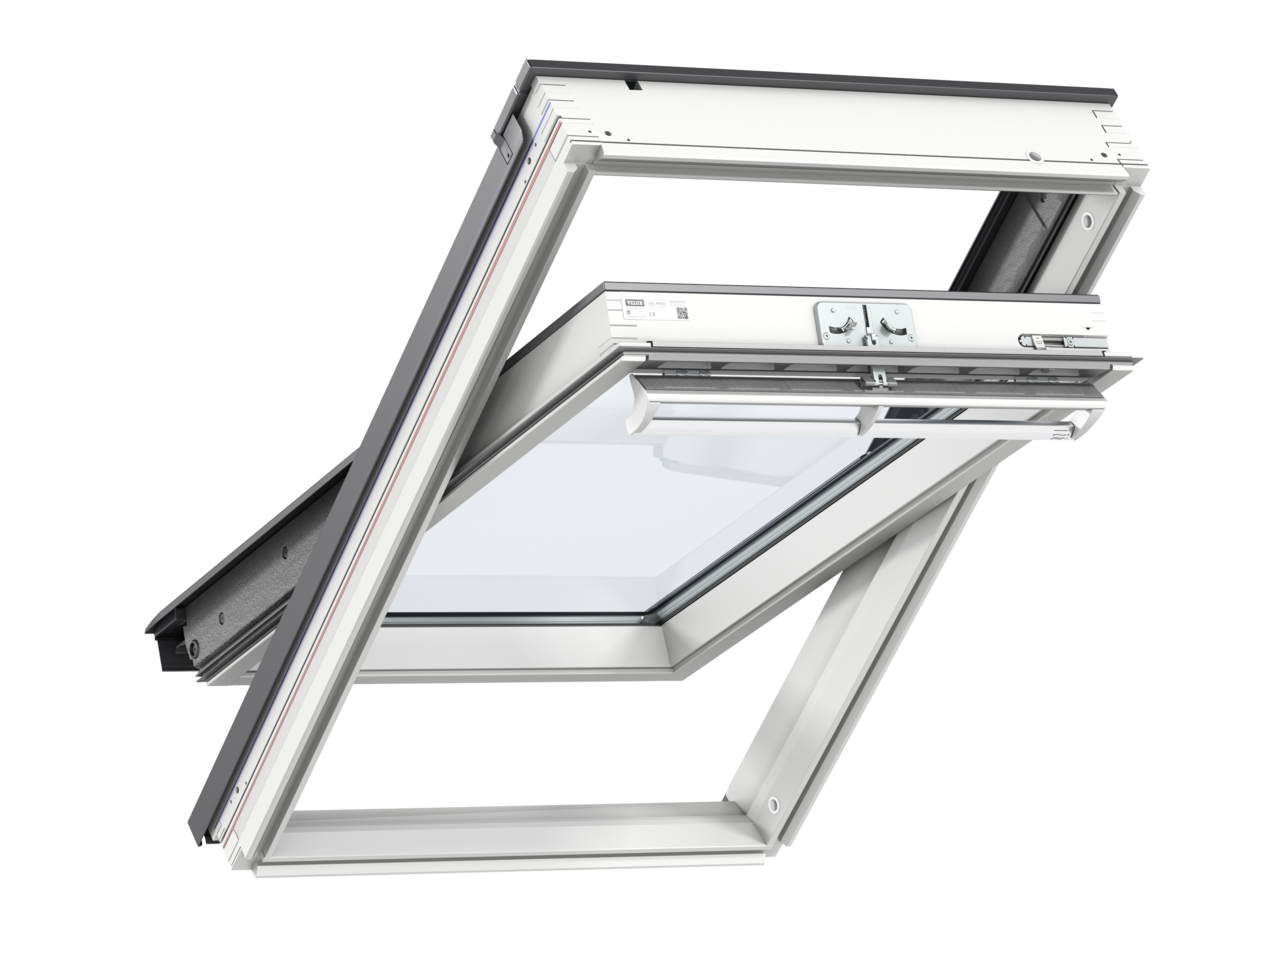 Velux GGL PK10 940 x 1600mm Centre Pivot Standard 70Pane Roof Window - White Painted